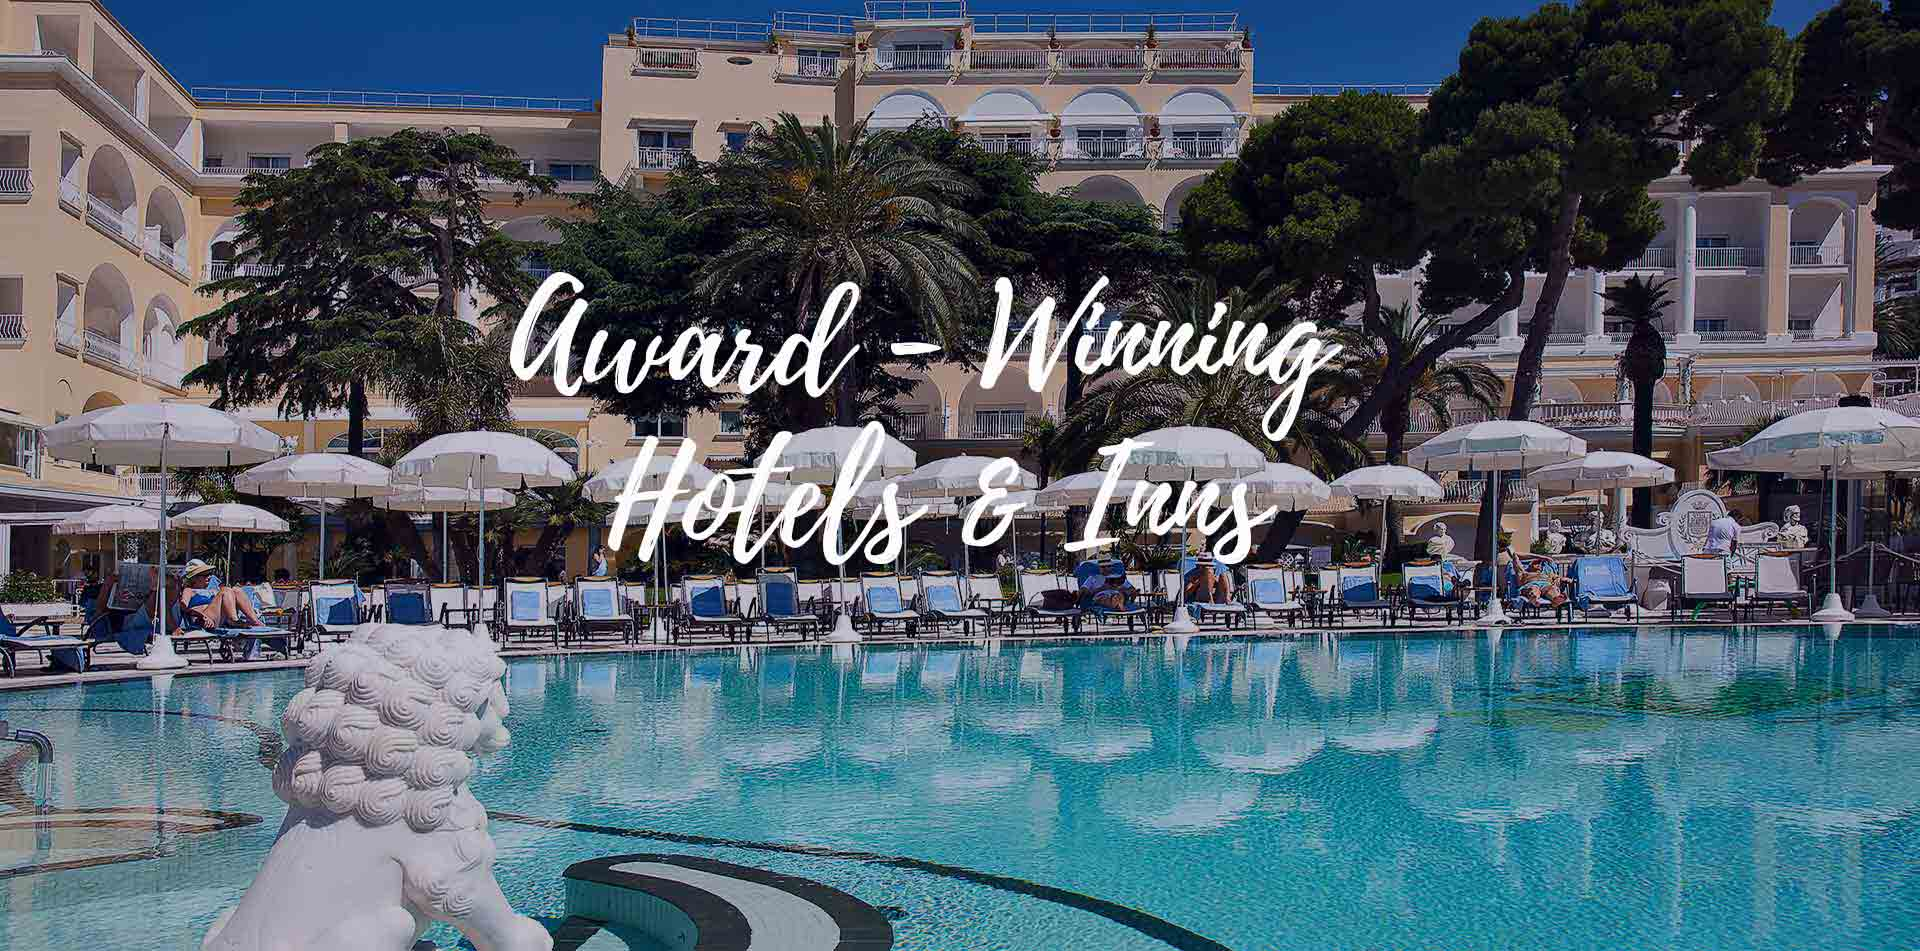 Europe Italy Amalfi Coast Capri Quisisana Hotel large pool Award-Winning hotels and inns - luxury vacation destinations